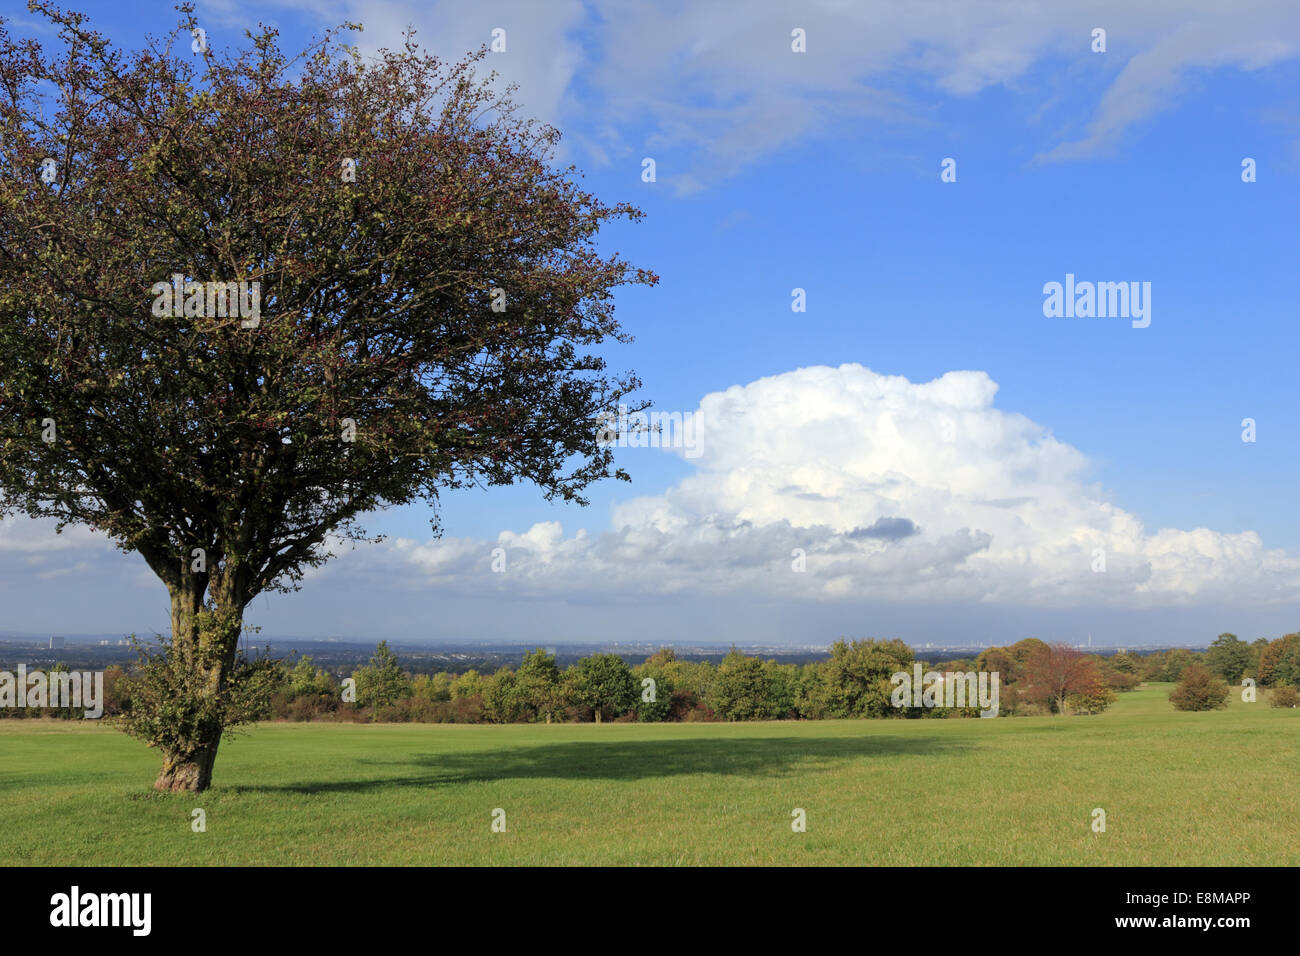 Epsom Downs, Surrey, UK. 10th October, 2014. On day of sunshine and showers, a huge storm cloud formed over London. - Stock Image